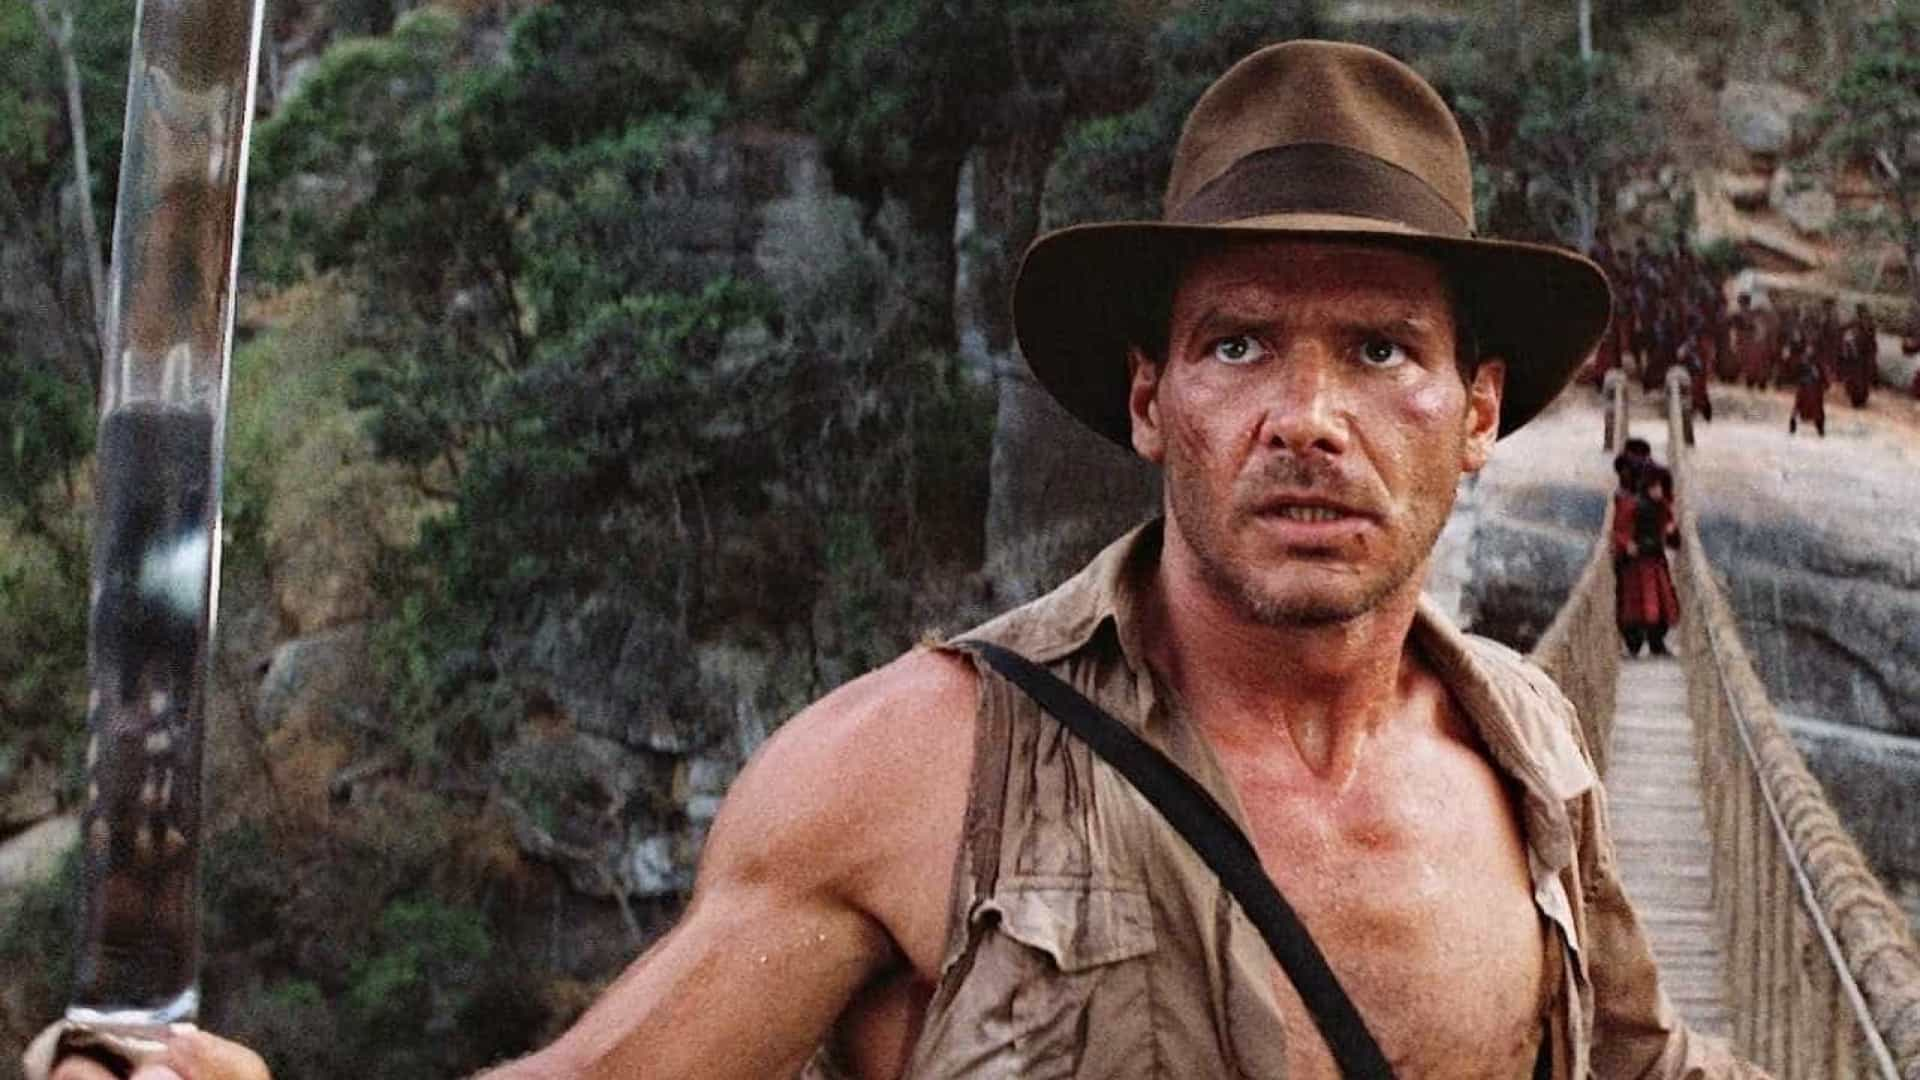 'Indiana Jones 5' volta a ser adiado